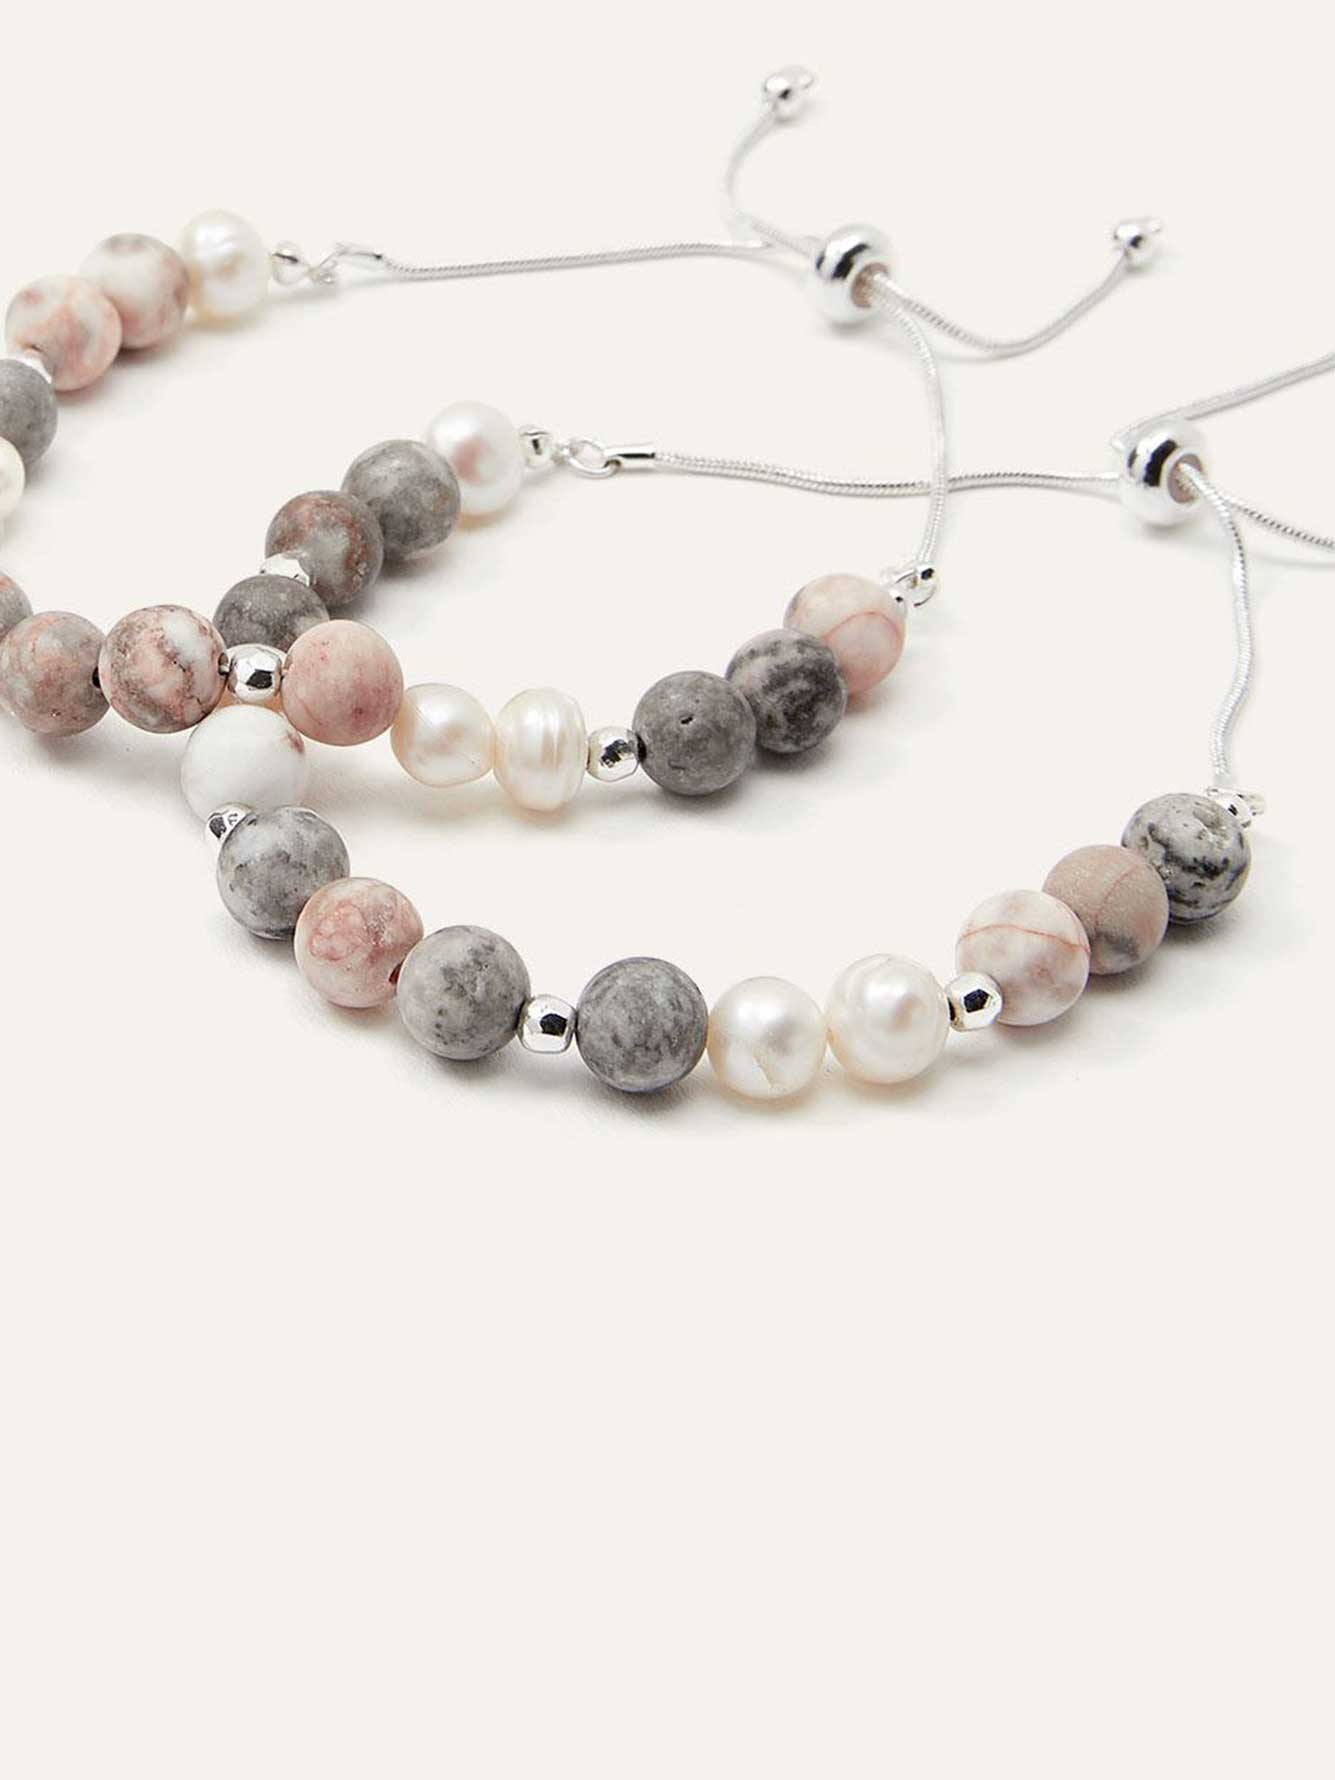 Set of 2 Semi-Precious Stone Bracelets with Fresh Water Pearls